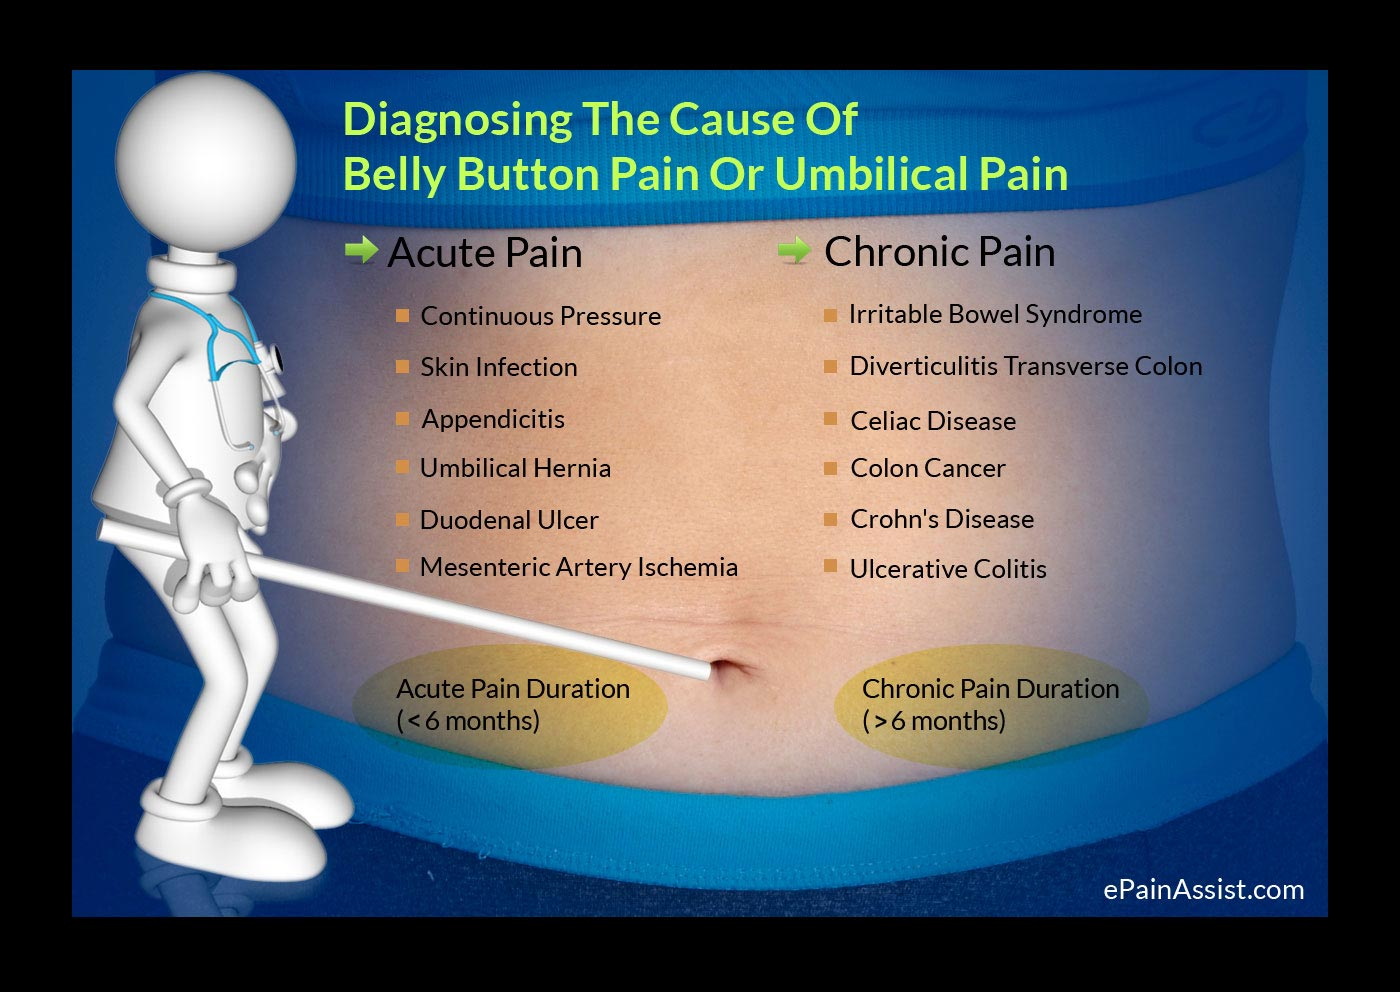 Diagnosis Of Belly Button Pain Or Umbilical Pain Acute